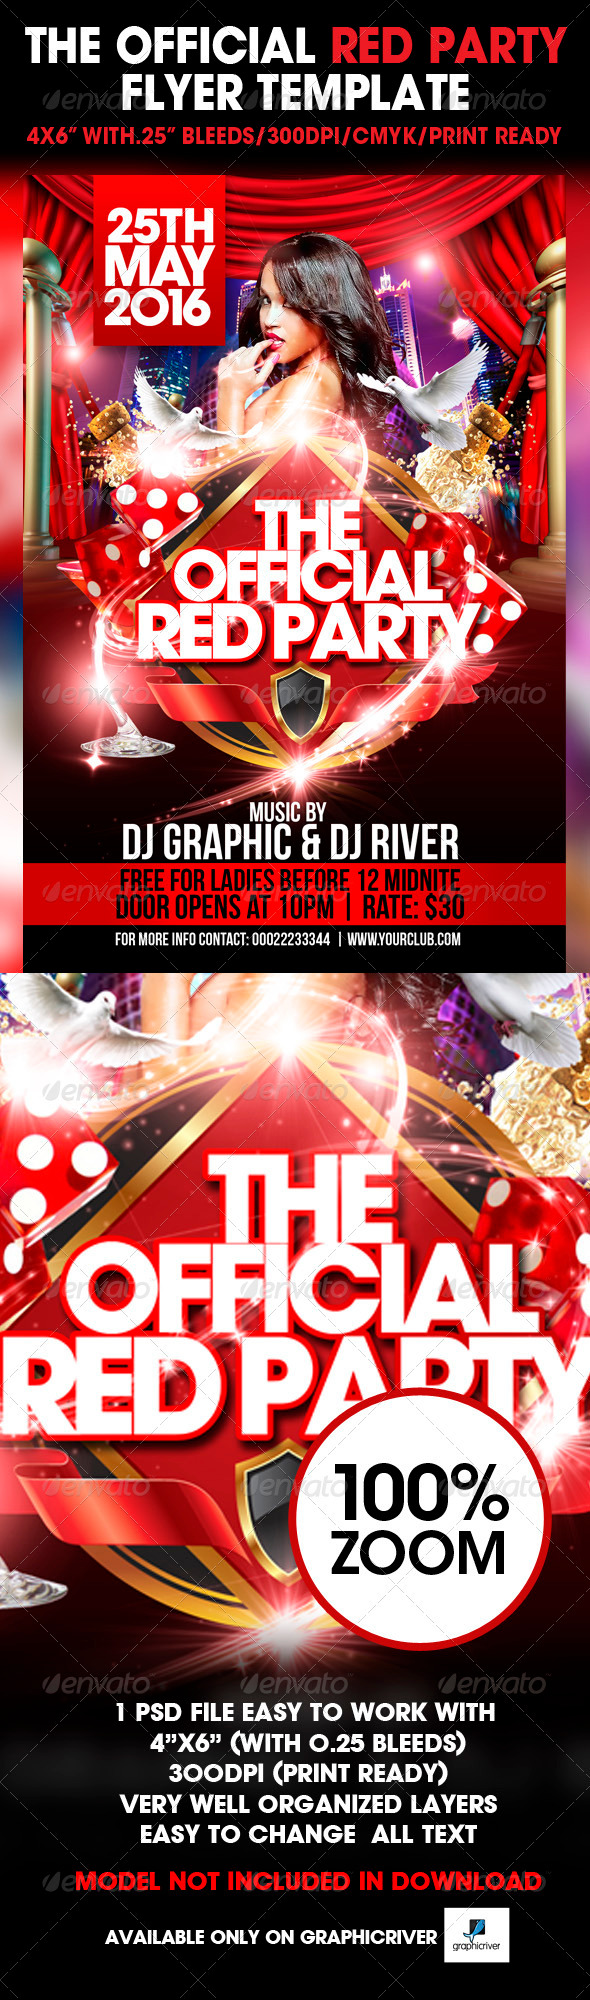 The Official Red Party Flyer Template - Clubs & Parties Events